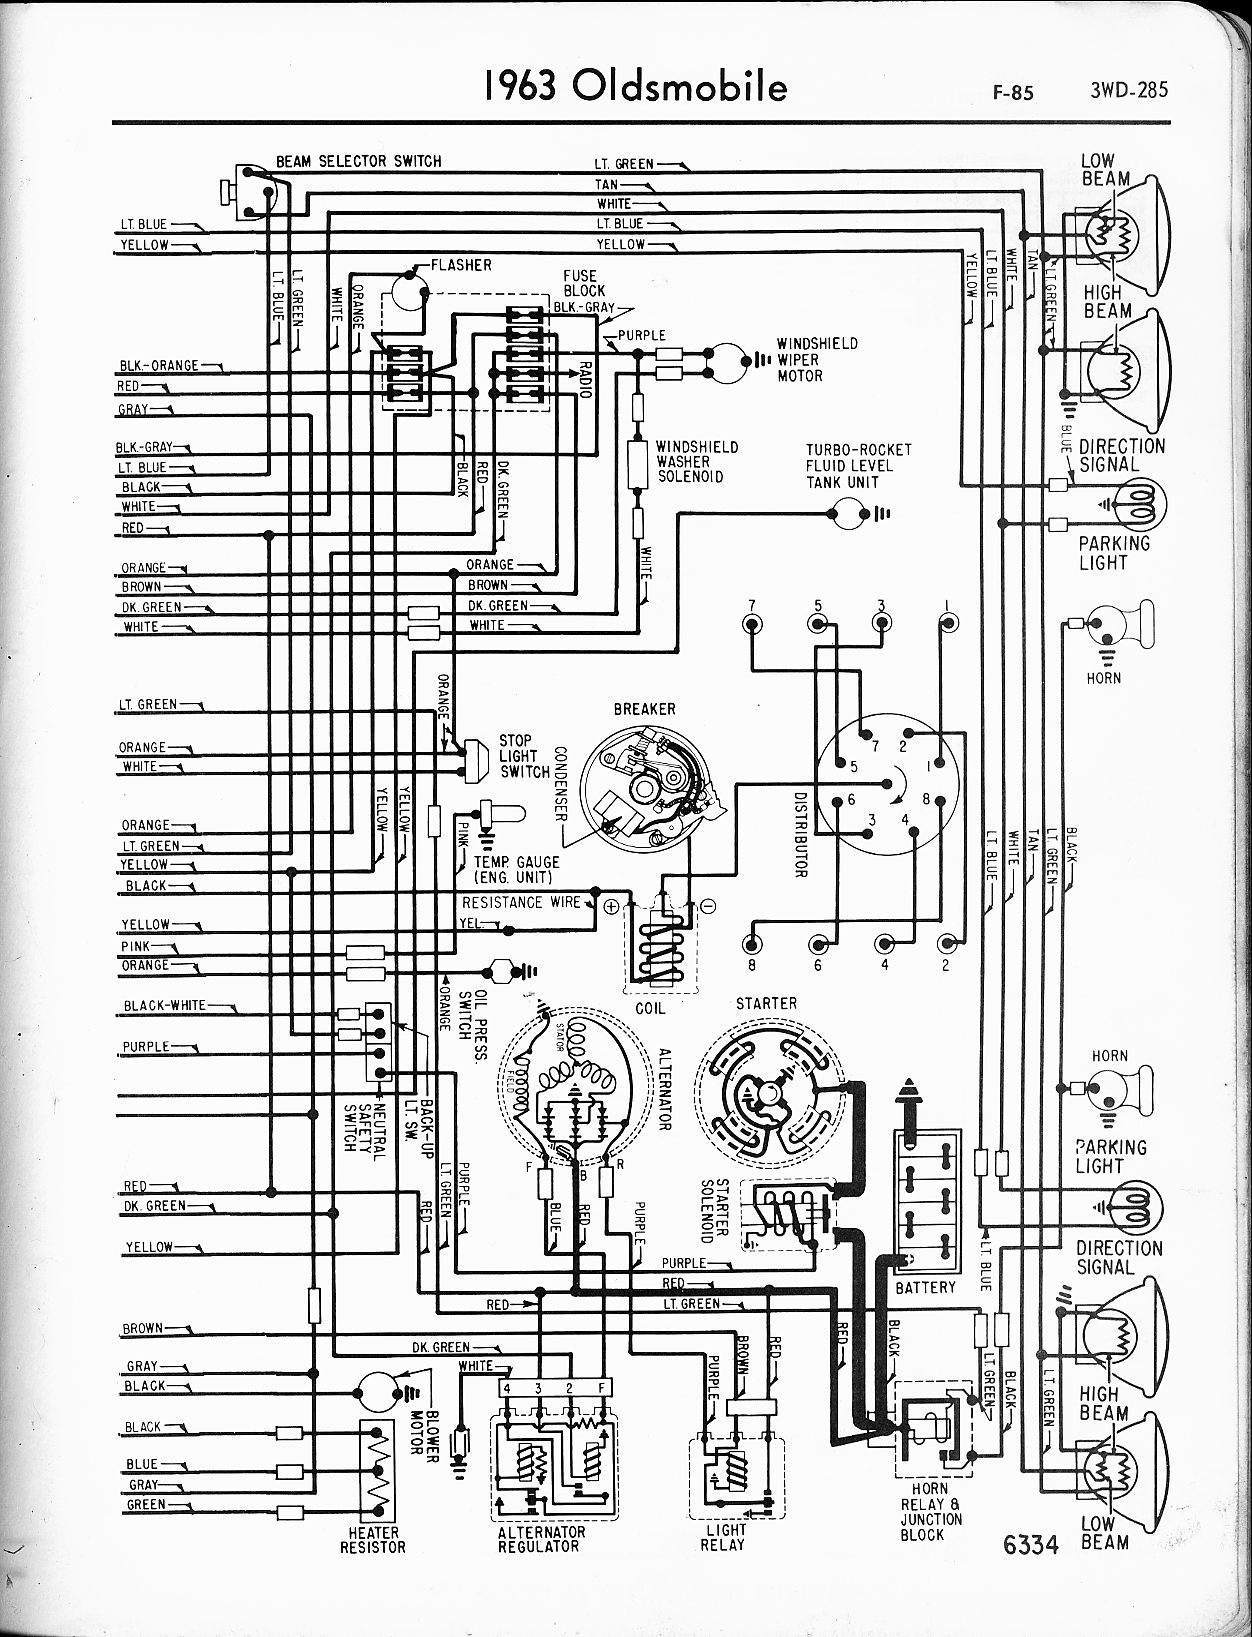 MWire5765 285 caterham 7 wiring diagram caterham csr 260 \u2022 wiring diagrams j majestic 36bdvr en wiring diagram at metegol.co